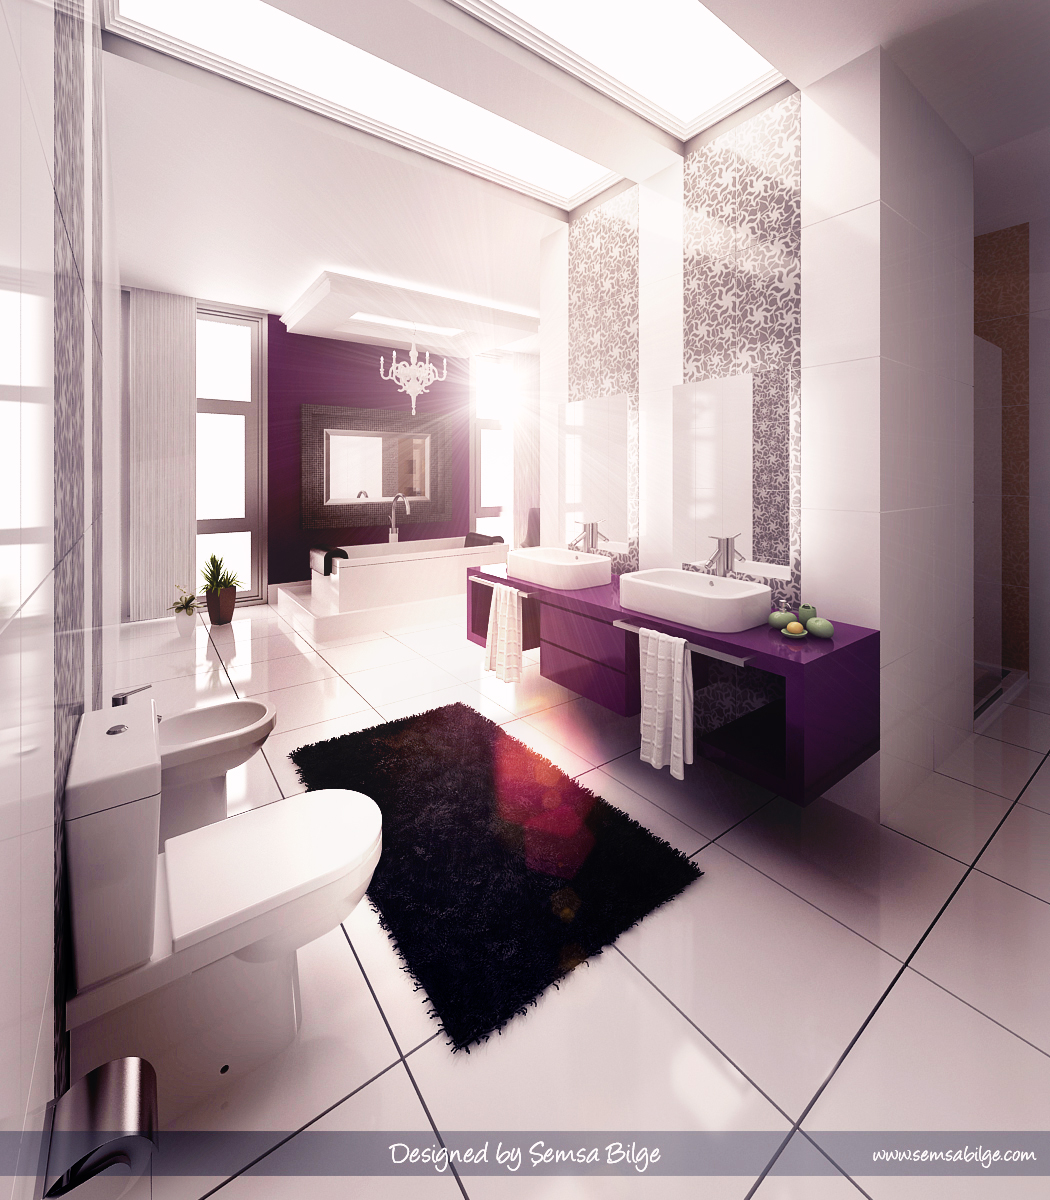 Inspiring bathroom designs for the soul for Pretty bathroom decorating ideas